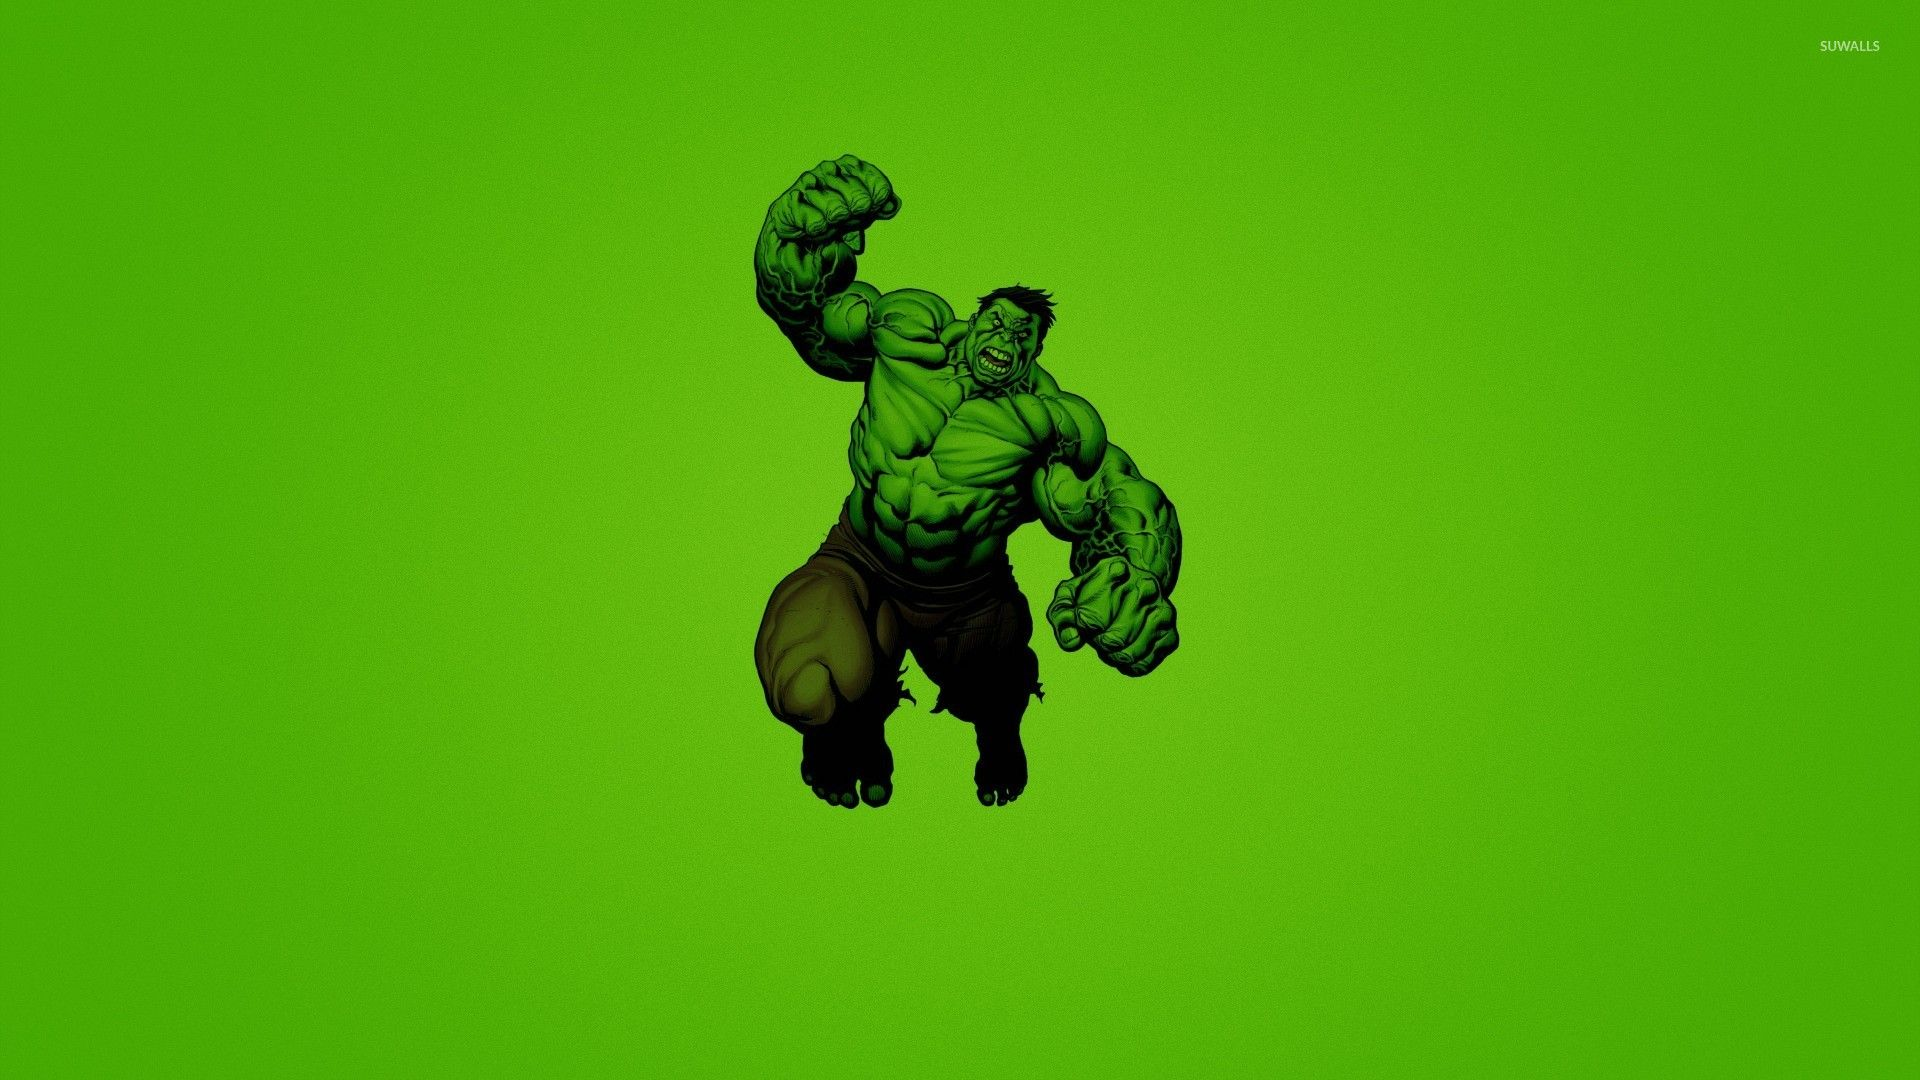 Hulk Wallpapers Top Free Hulk Backgrounds Wallpaperaccess